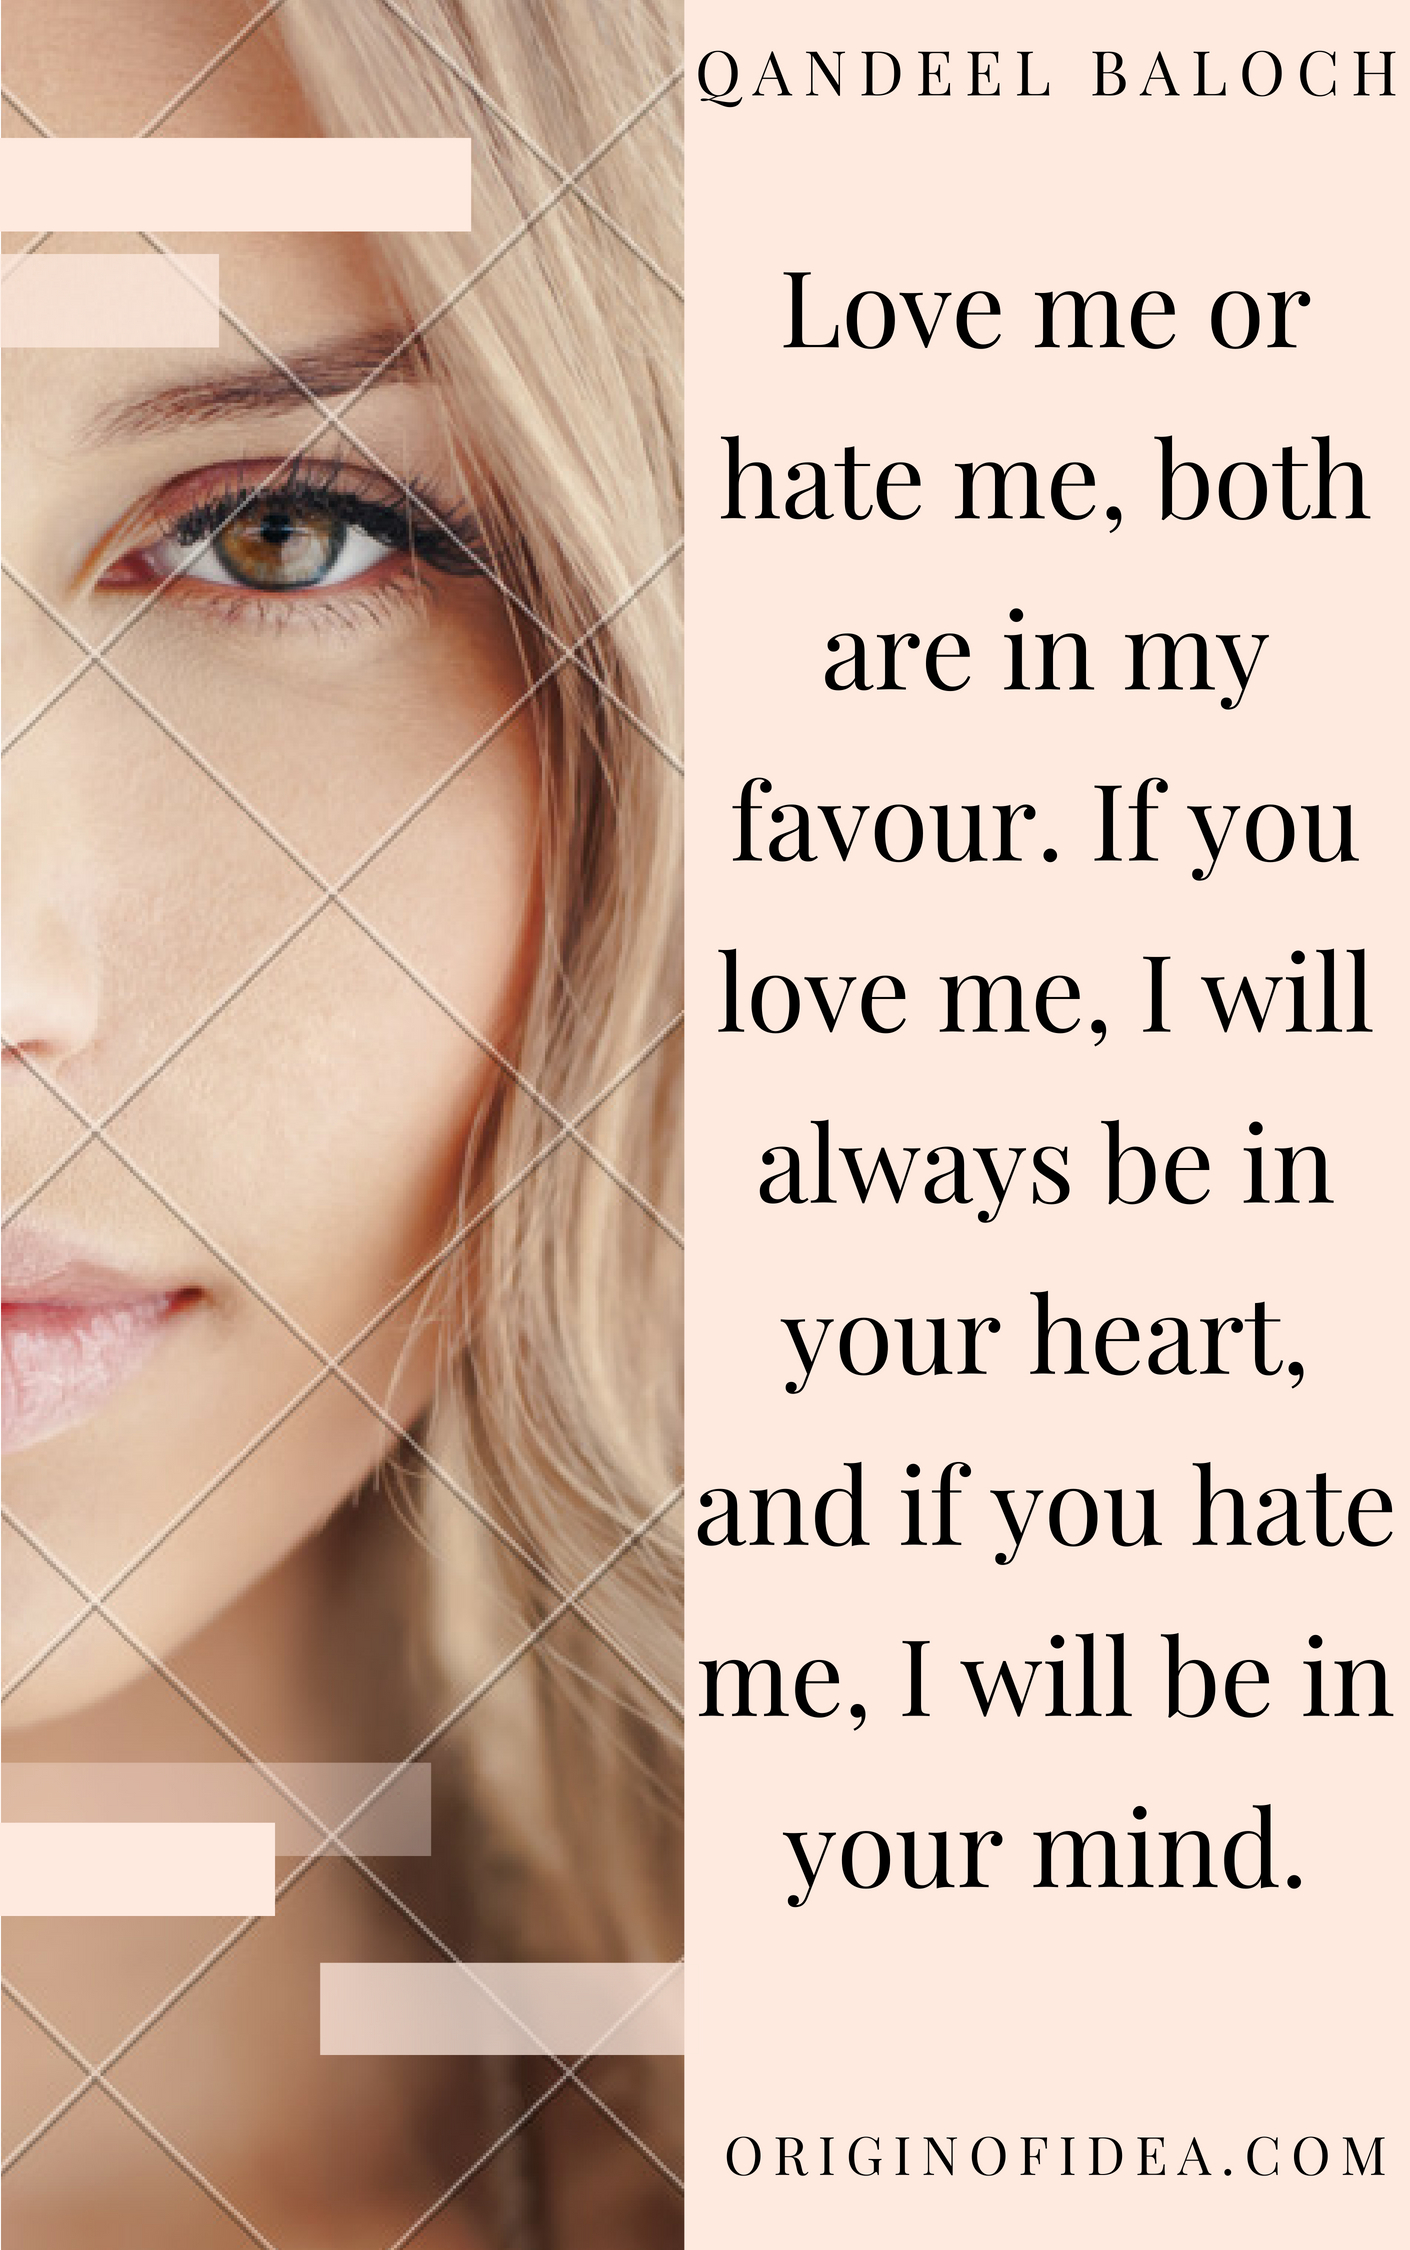 Love Quotes - Love me or hate me, both are in my favour. If you love me, I will always be in your heart, and if you hate me, I will be in your mind.